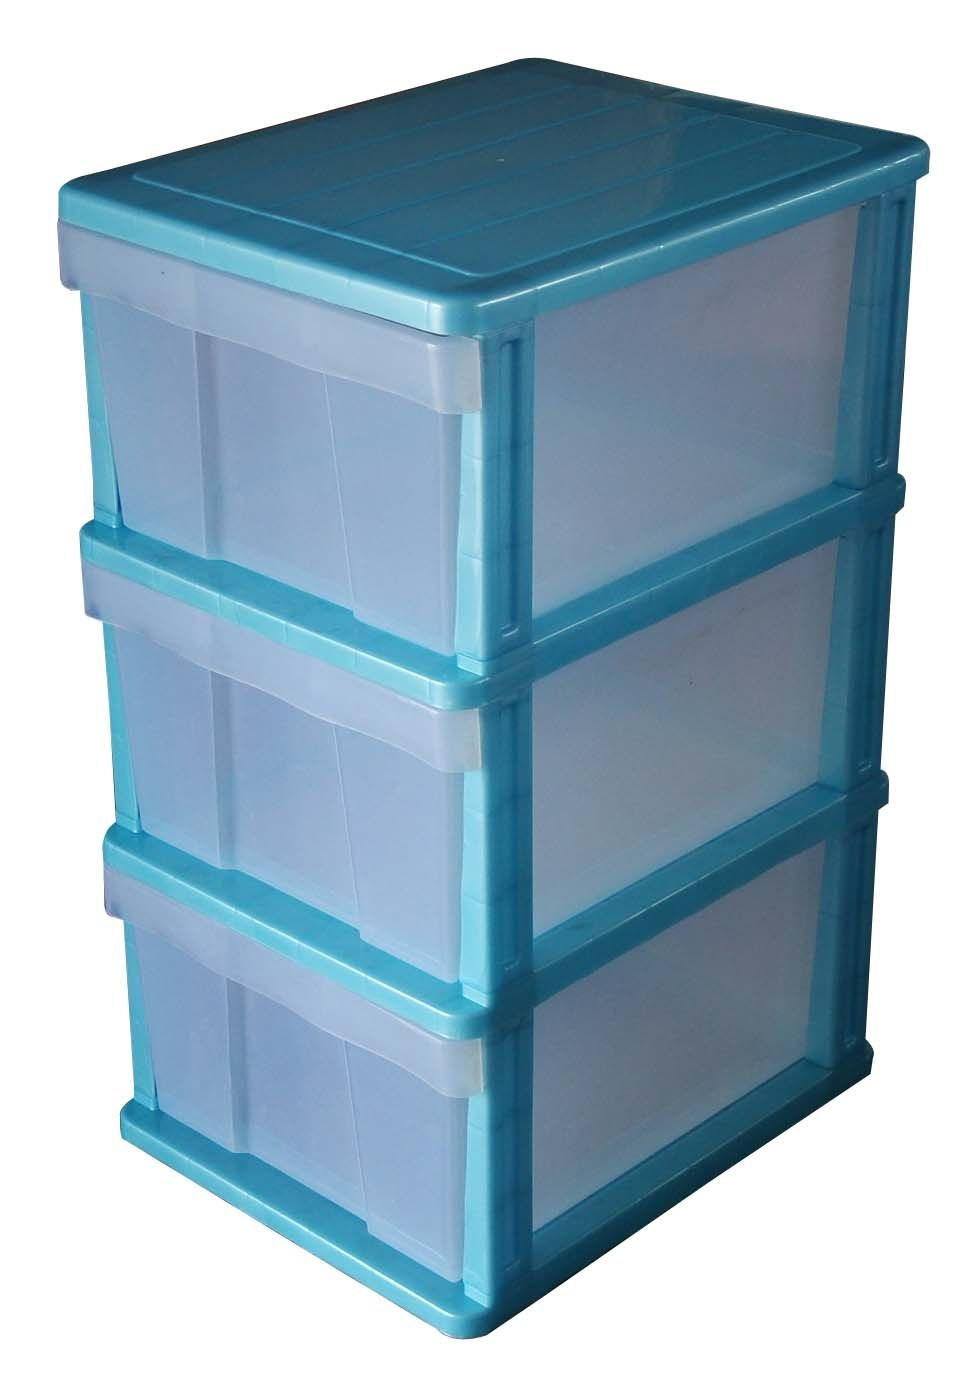 [Hot Item] Plastic Drawer Cabinets for Storage Storage Container Plastic Box  sc 1 st  Pinterest & design-storage-containers-walmart-for-help-save-space-and-keep ...